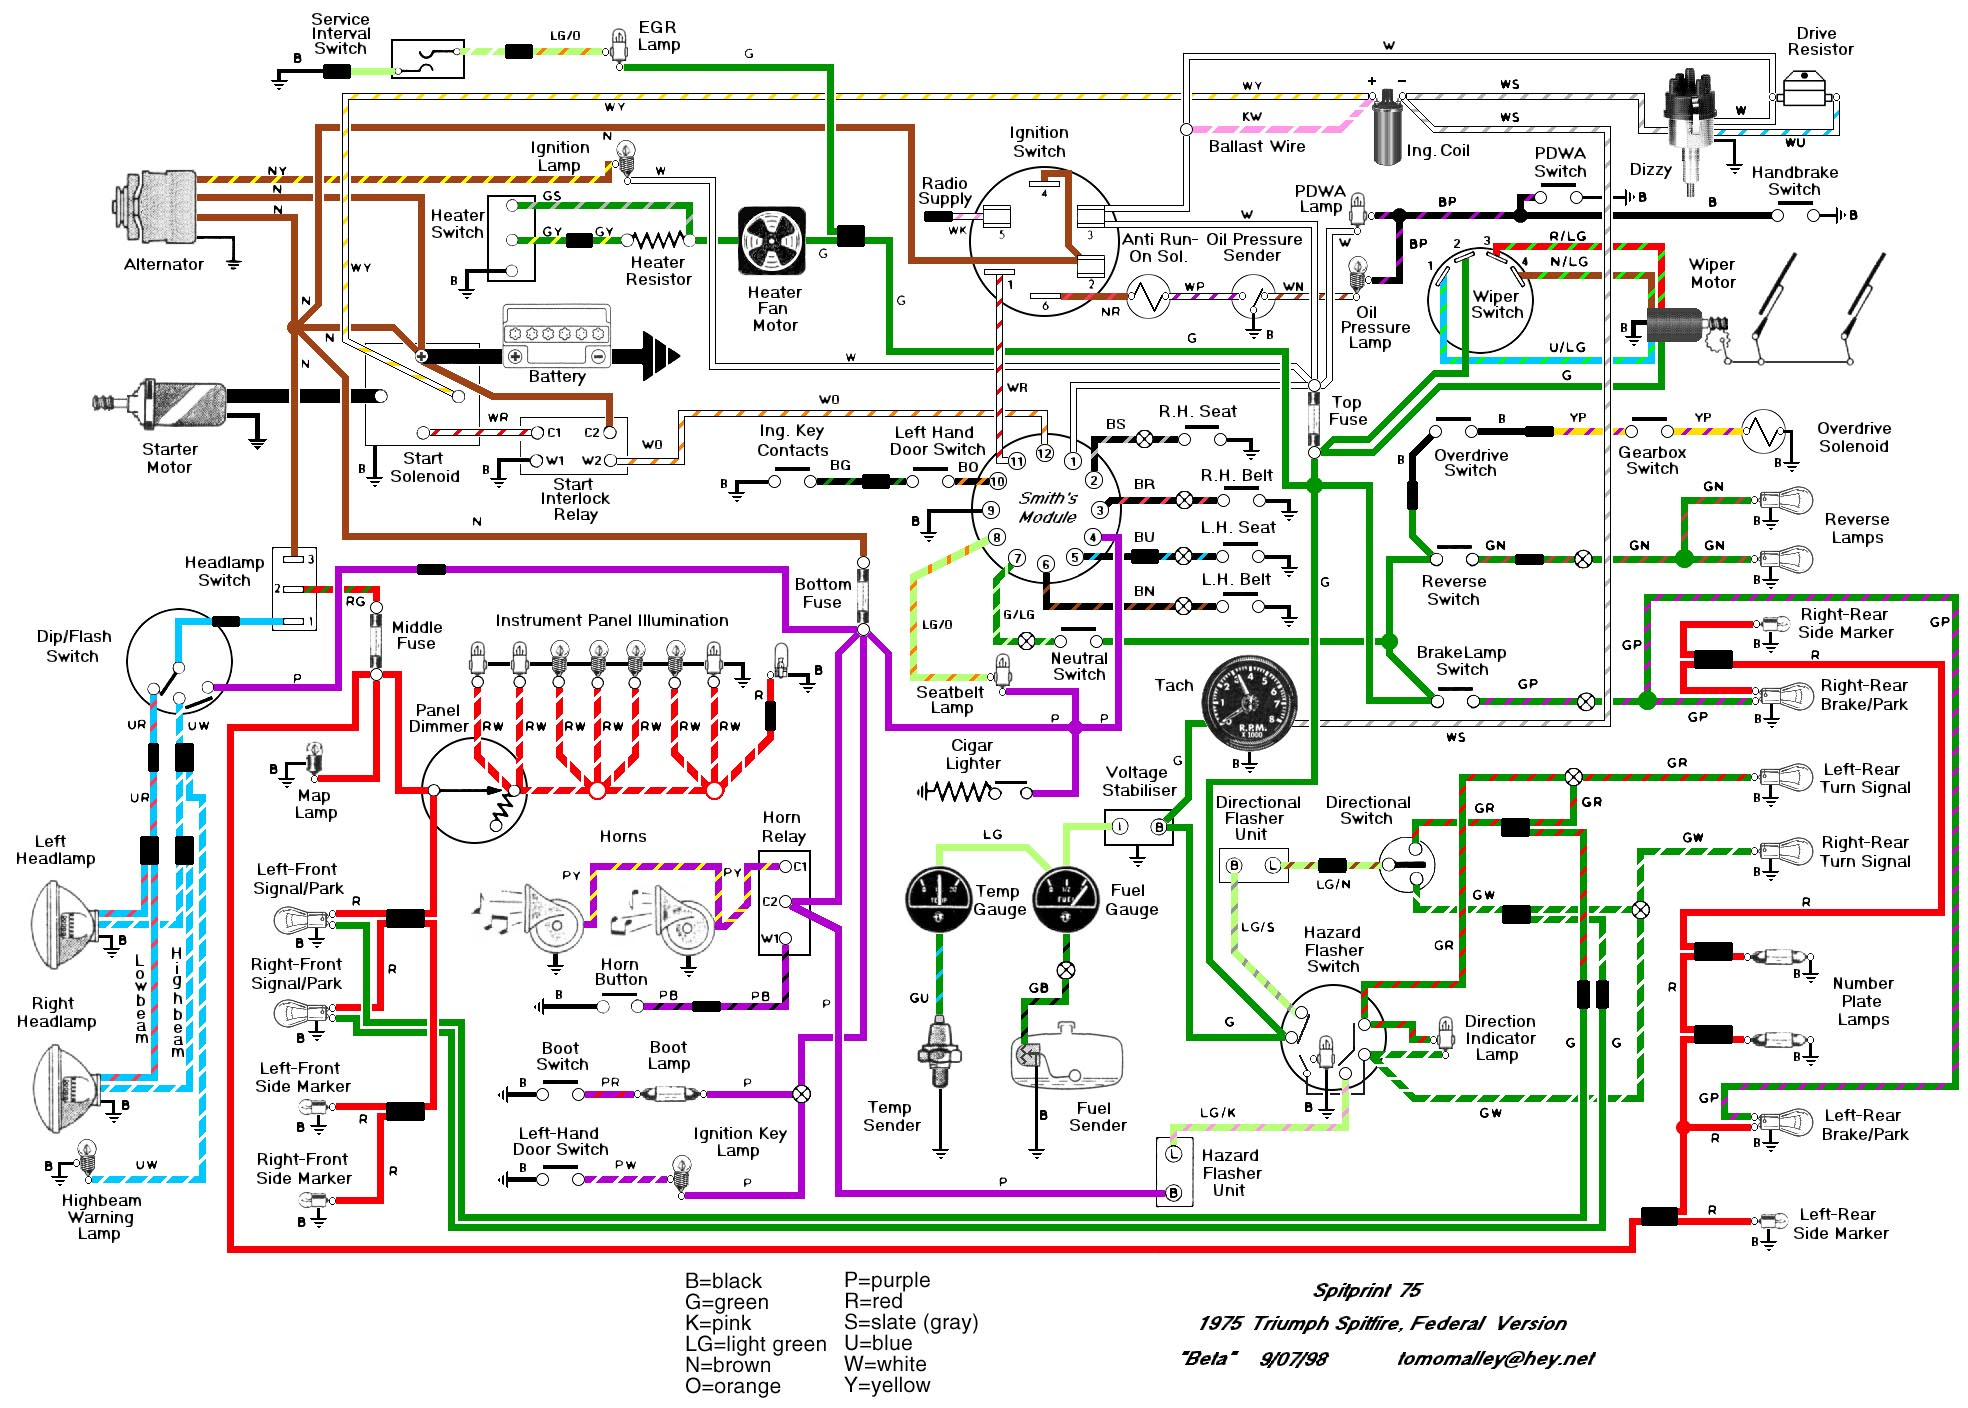 Car Ecu Wiring Diagram Electronic Wiring Diagrams Car Wiring Diagram  Symbols Cars Wiring Diagram